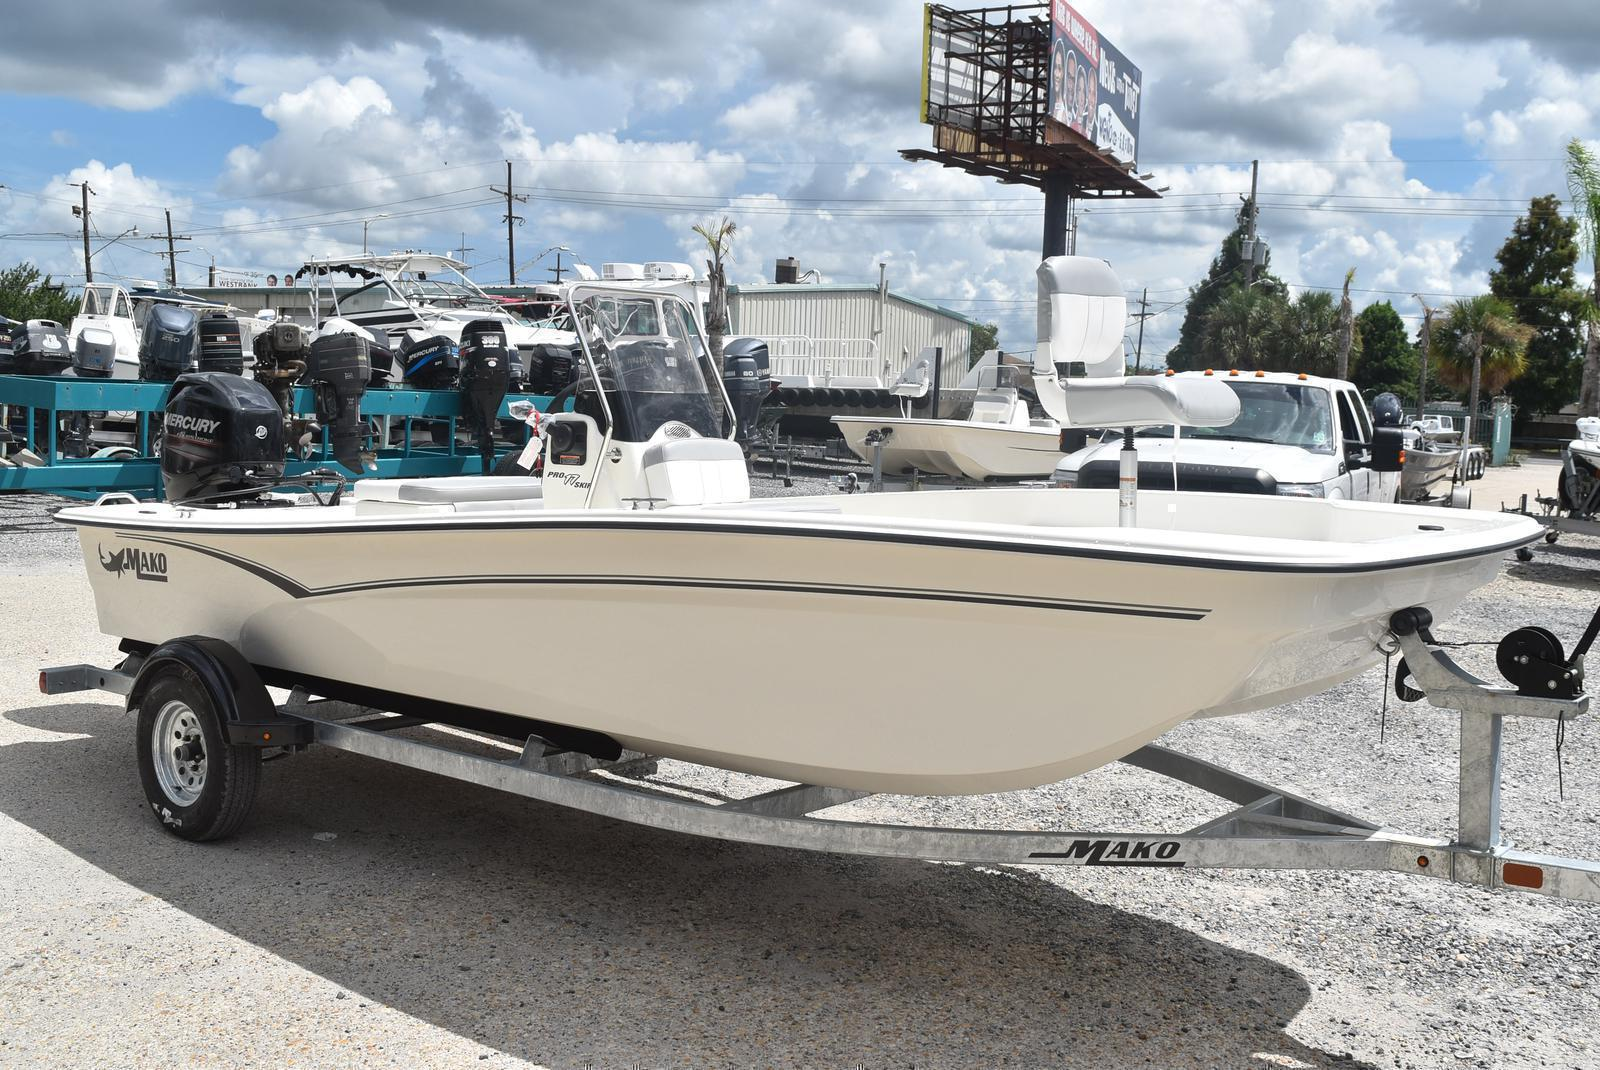 2020 Mako boat for sale, model of the boat is Pro Skiff 17, 75 ELPT & Image # 651 of 702